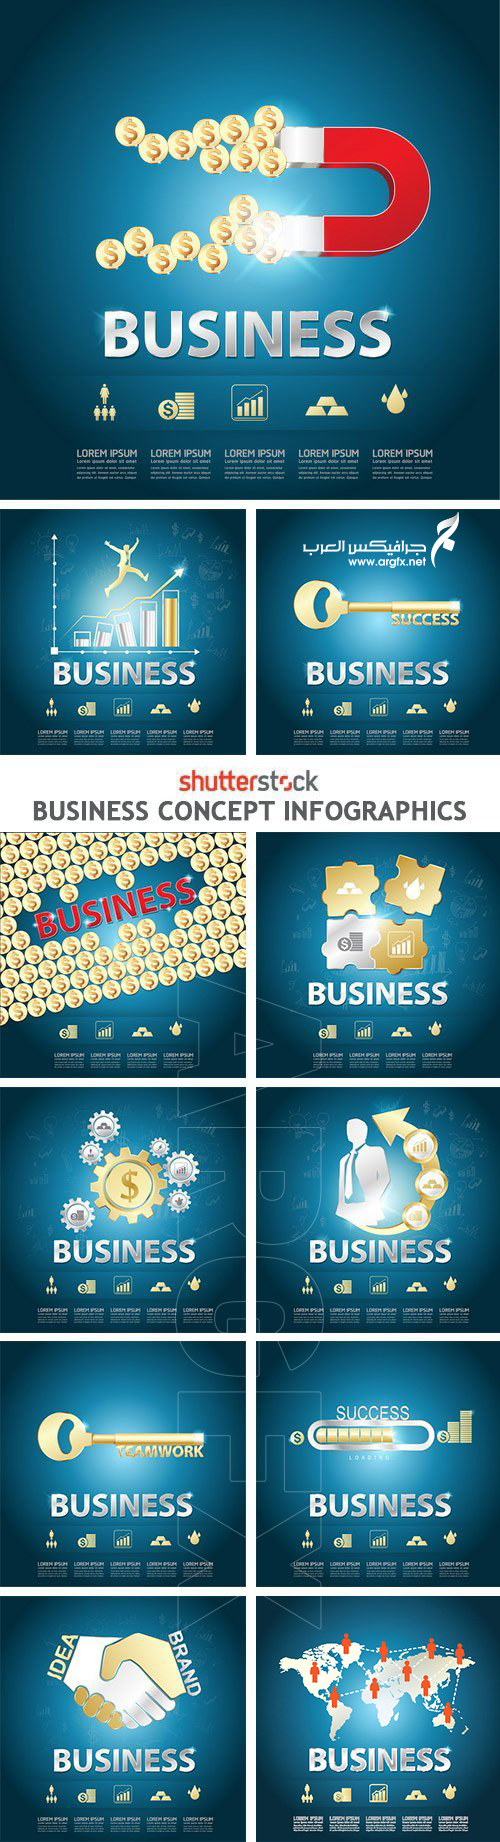 Business Concept Infographics - 25xEPS